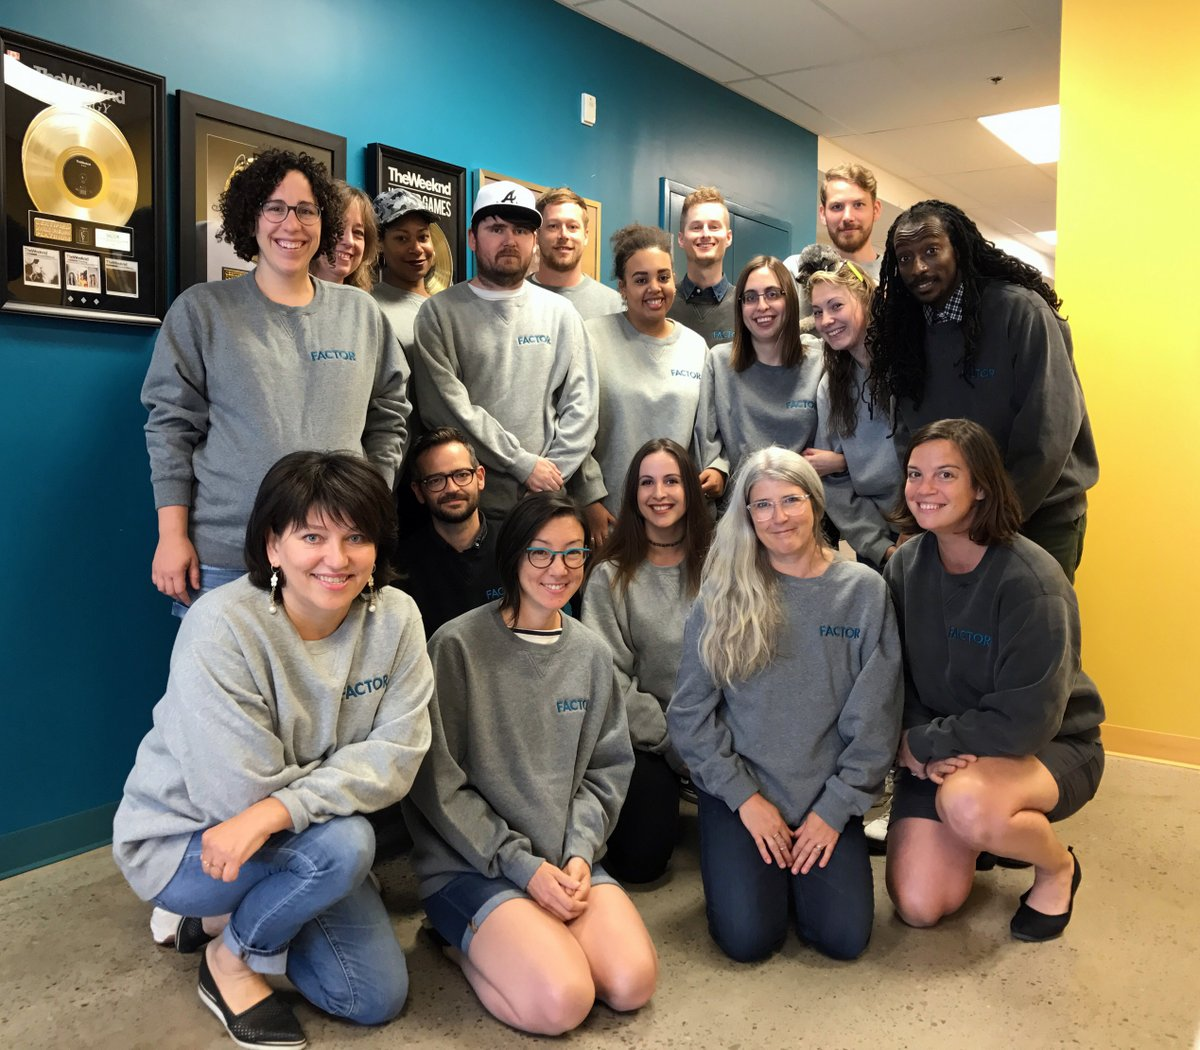 Found on Twitter yesterday: The FACTOR crew sporting their new fall pullovers